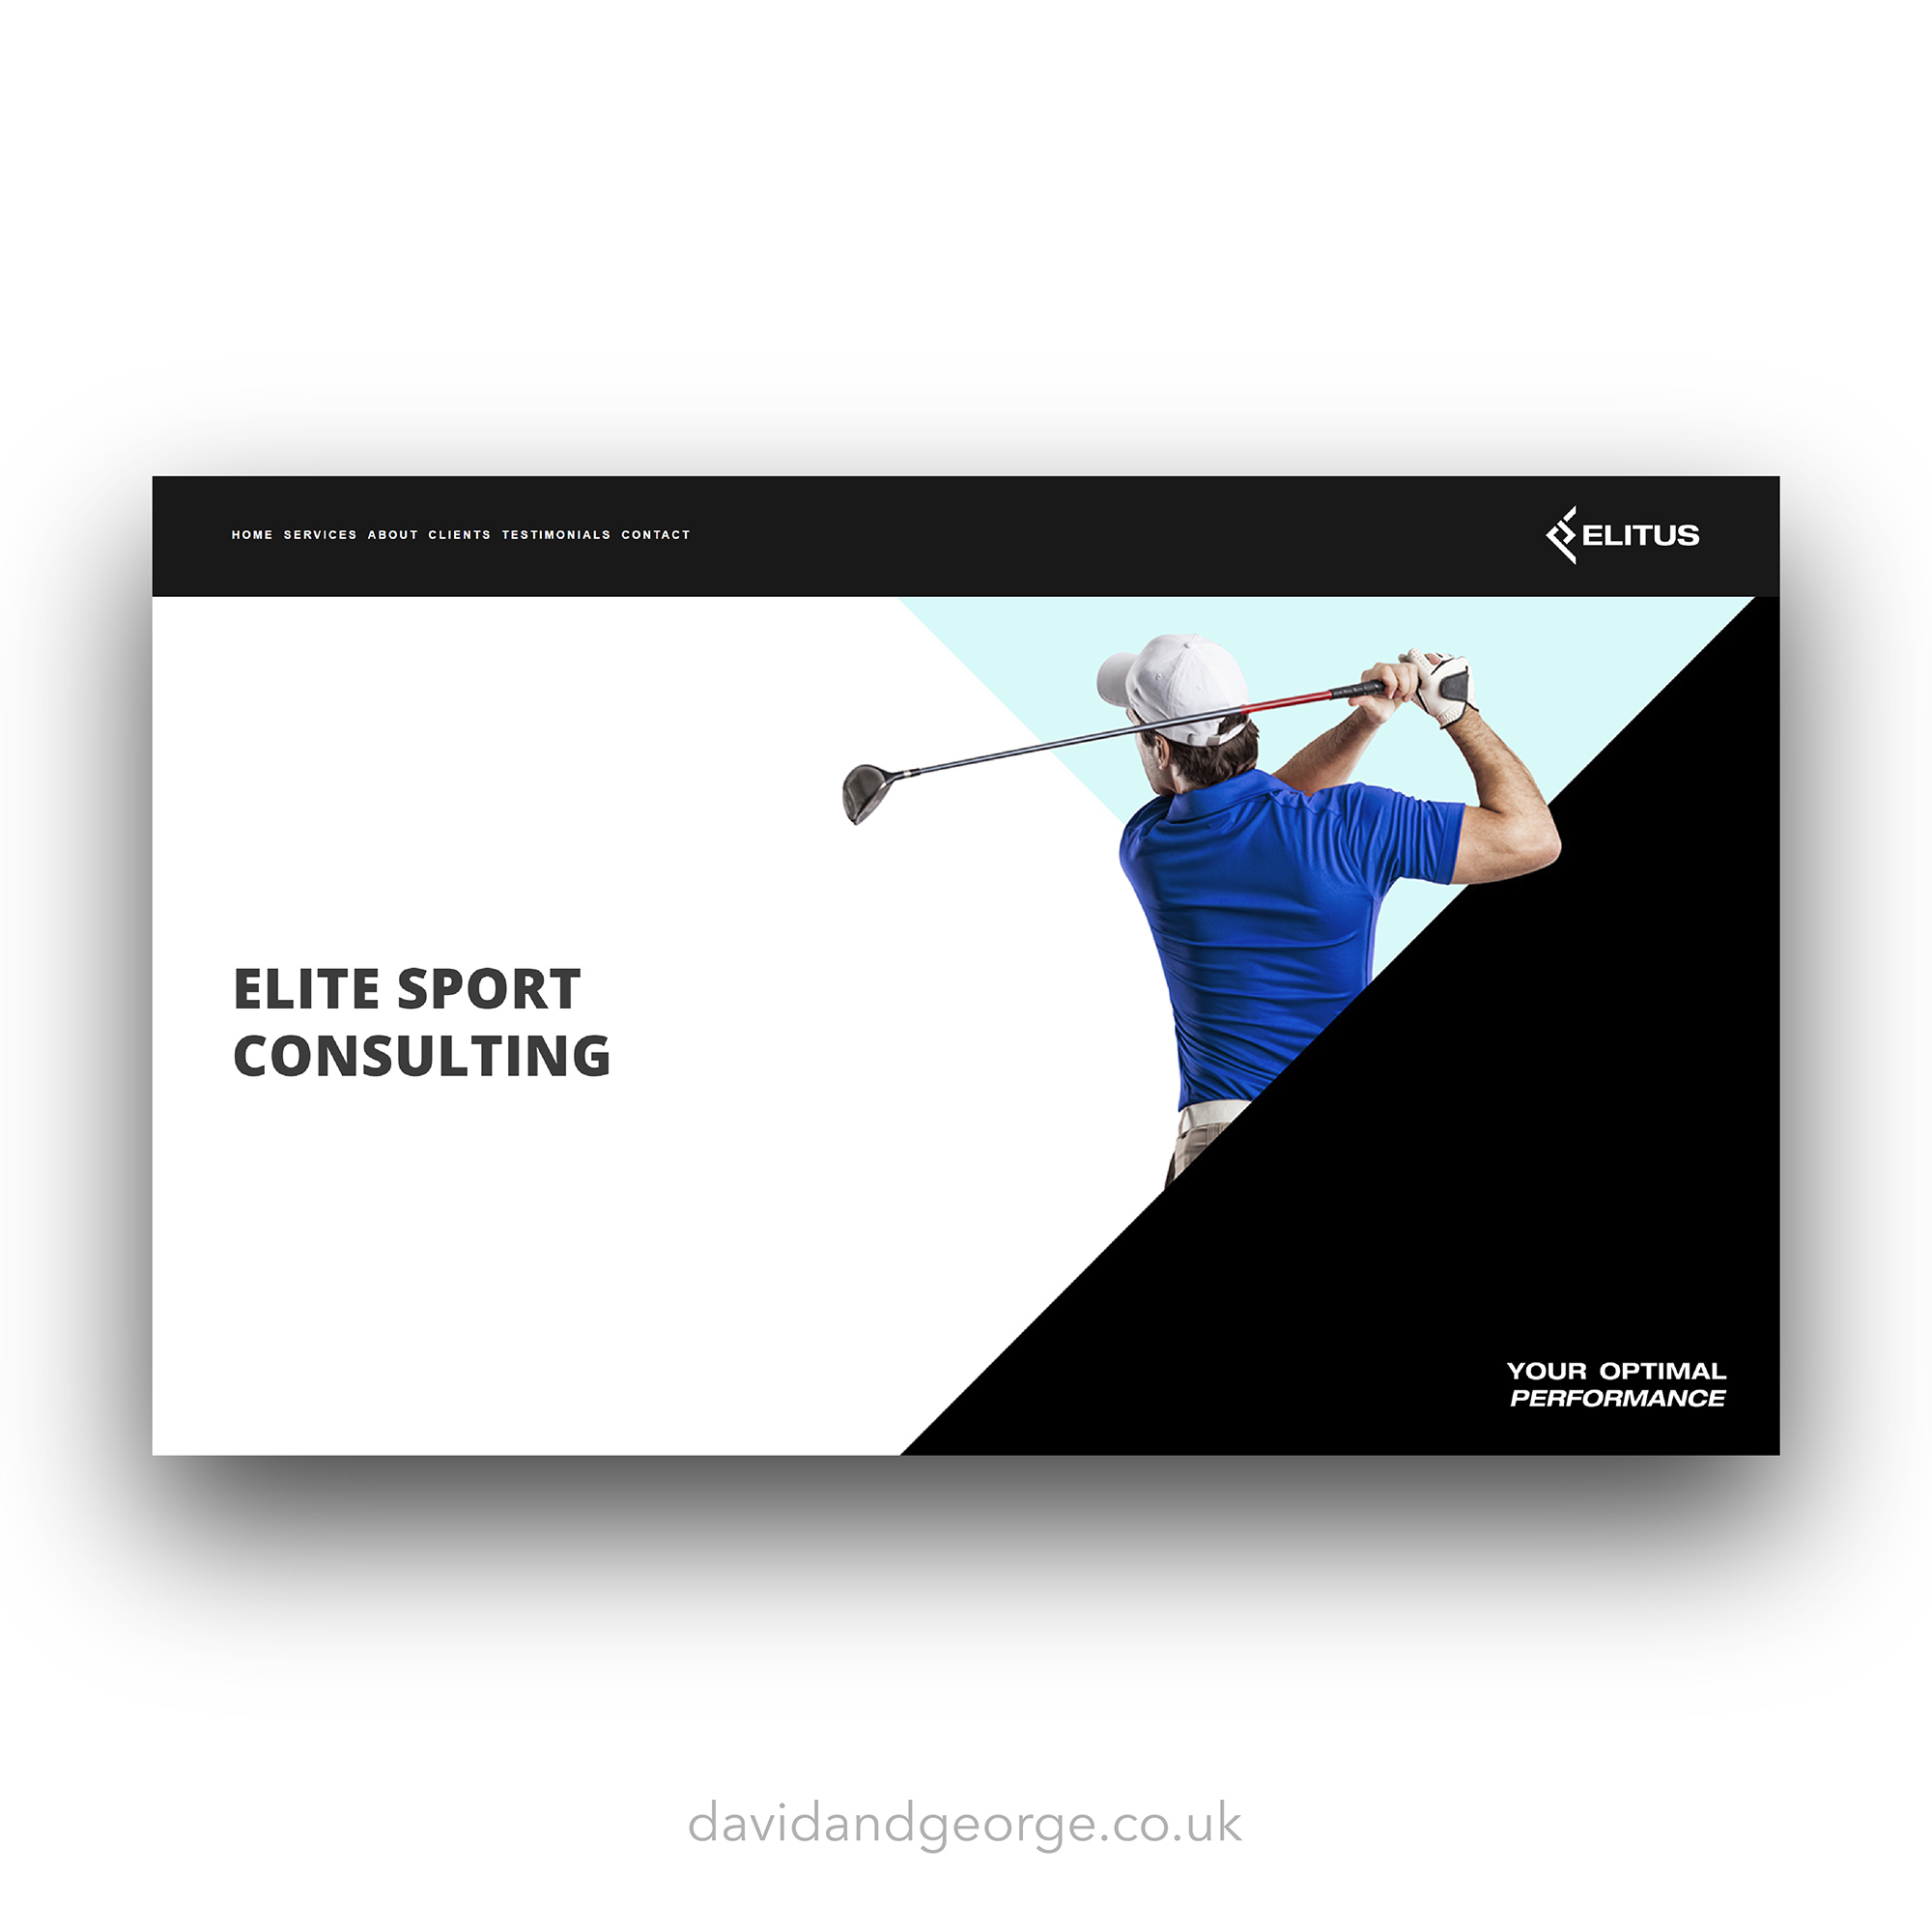 elitus-sport-consulting-health-and-fitness-website-examples-squarespace-designer-uk-02.jpg